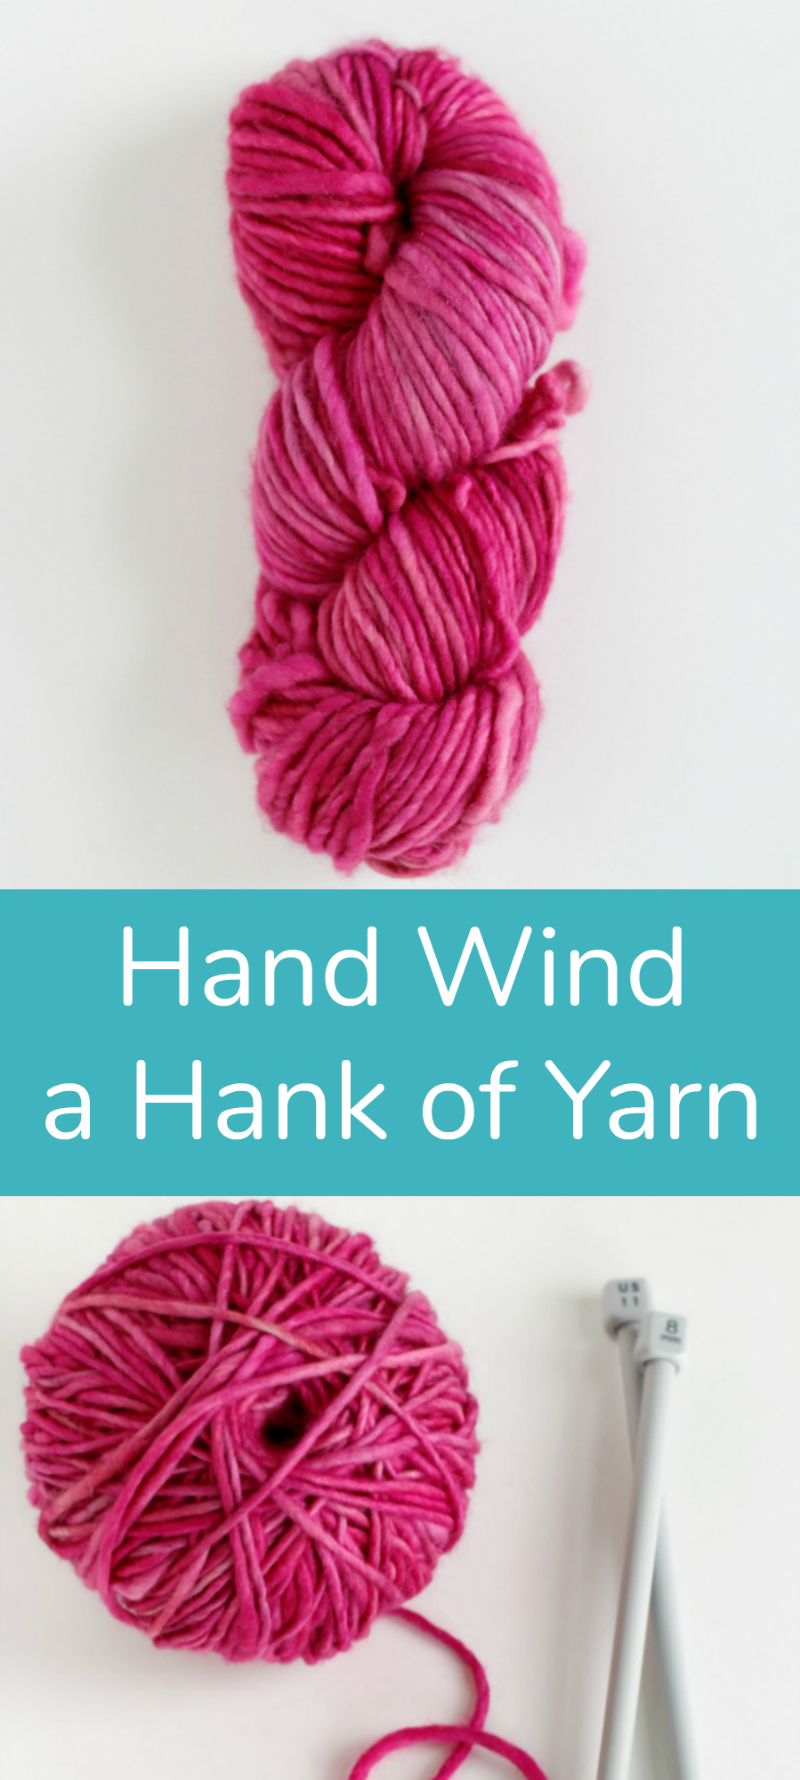 How to Hand Wind a Hank of Yarn